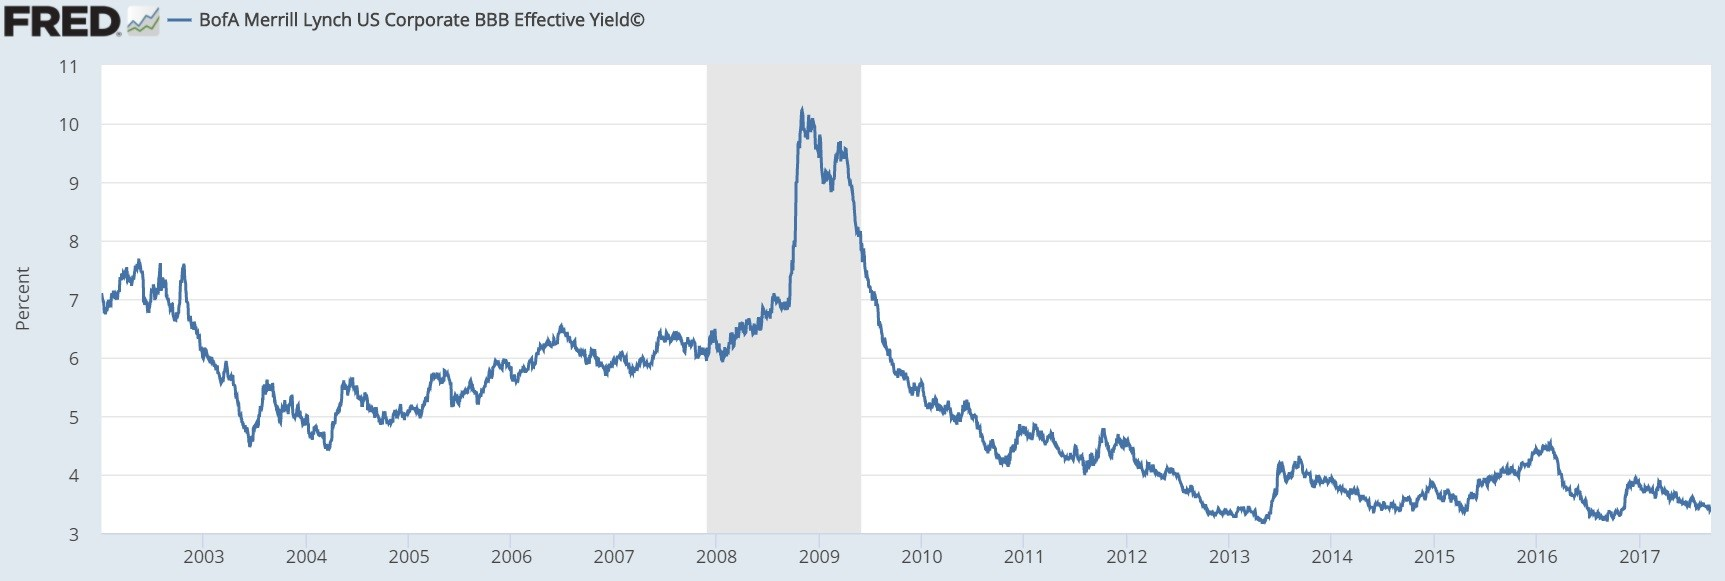 BBB Bond Yields Have Fallen